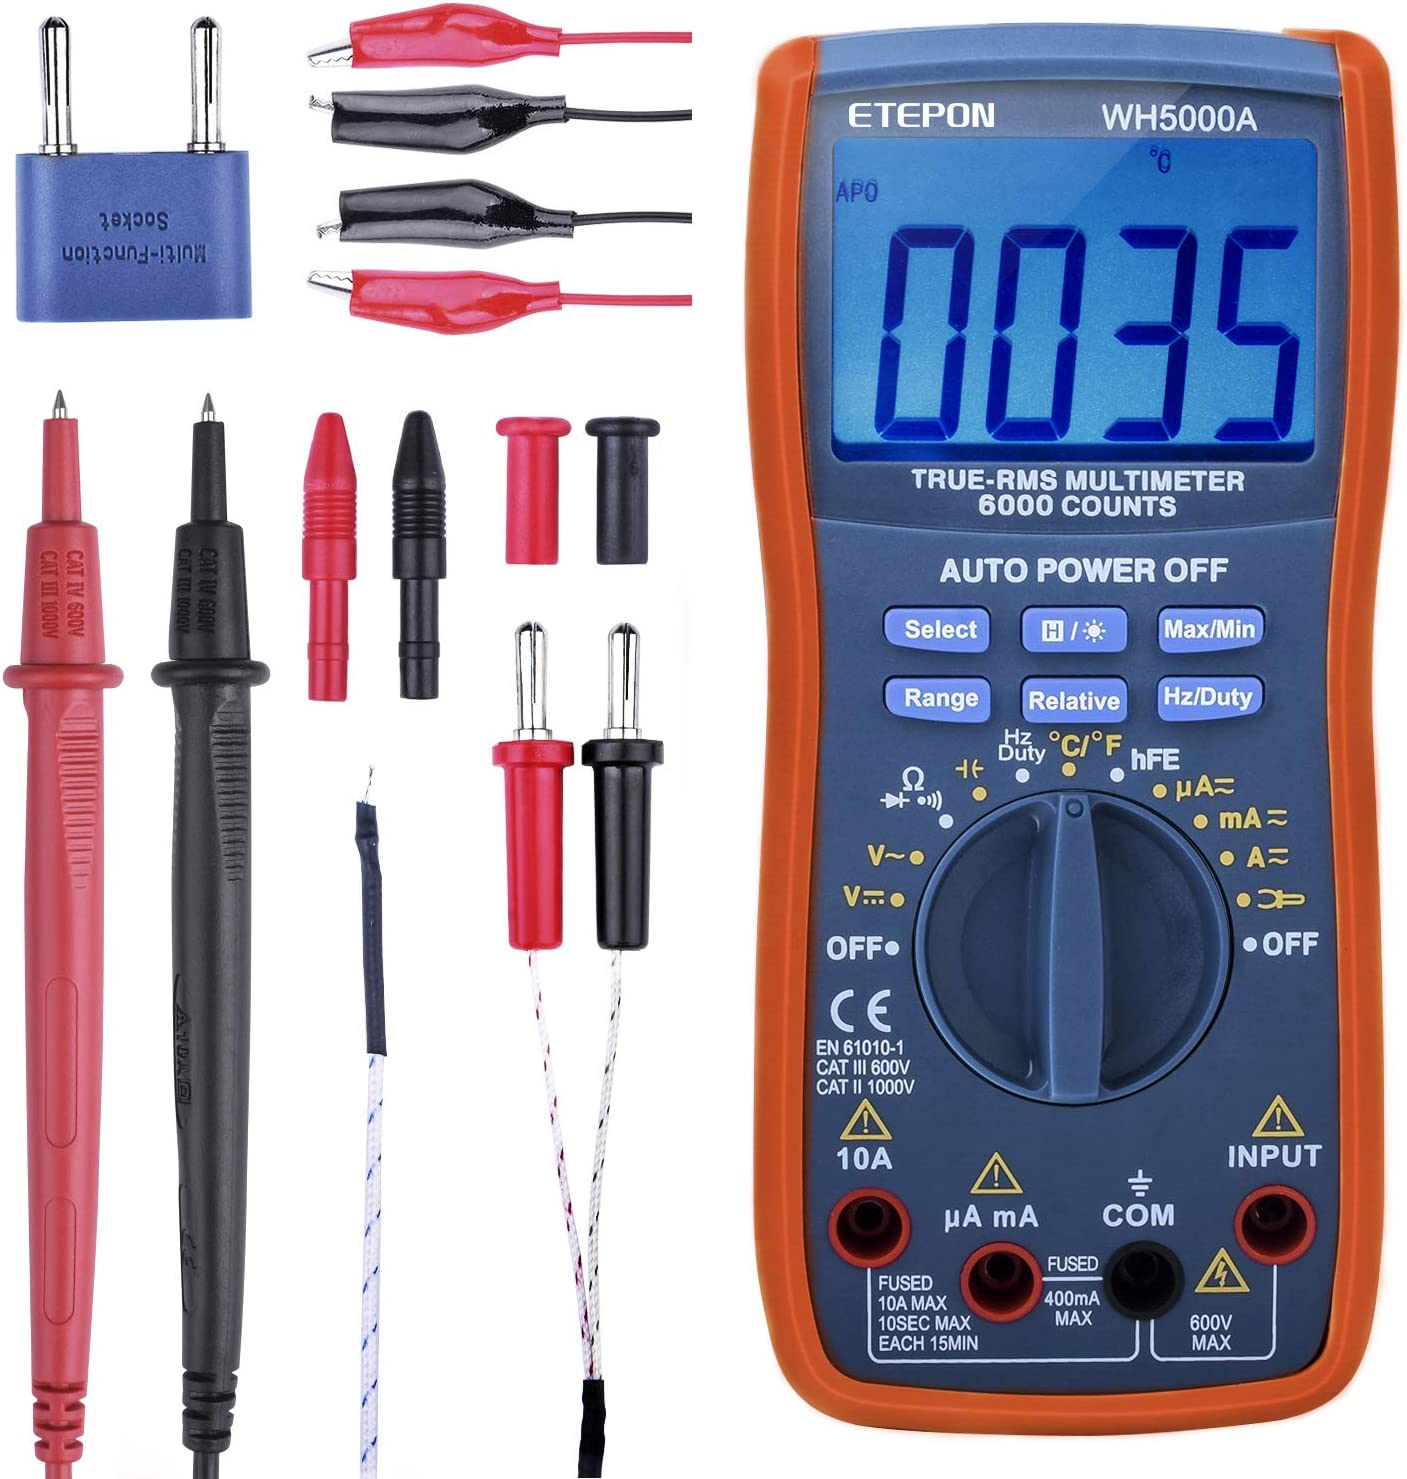 Etepon Wh5000a Digital Multimeter True Rms6000 Counts Multimeters Manual And Auto Range Measures Voltage Current Resistance Continuity Capacity Frequency Tests Diodes Transistors Temperature Auto